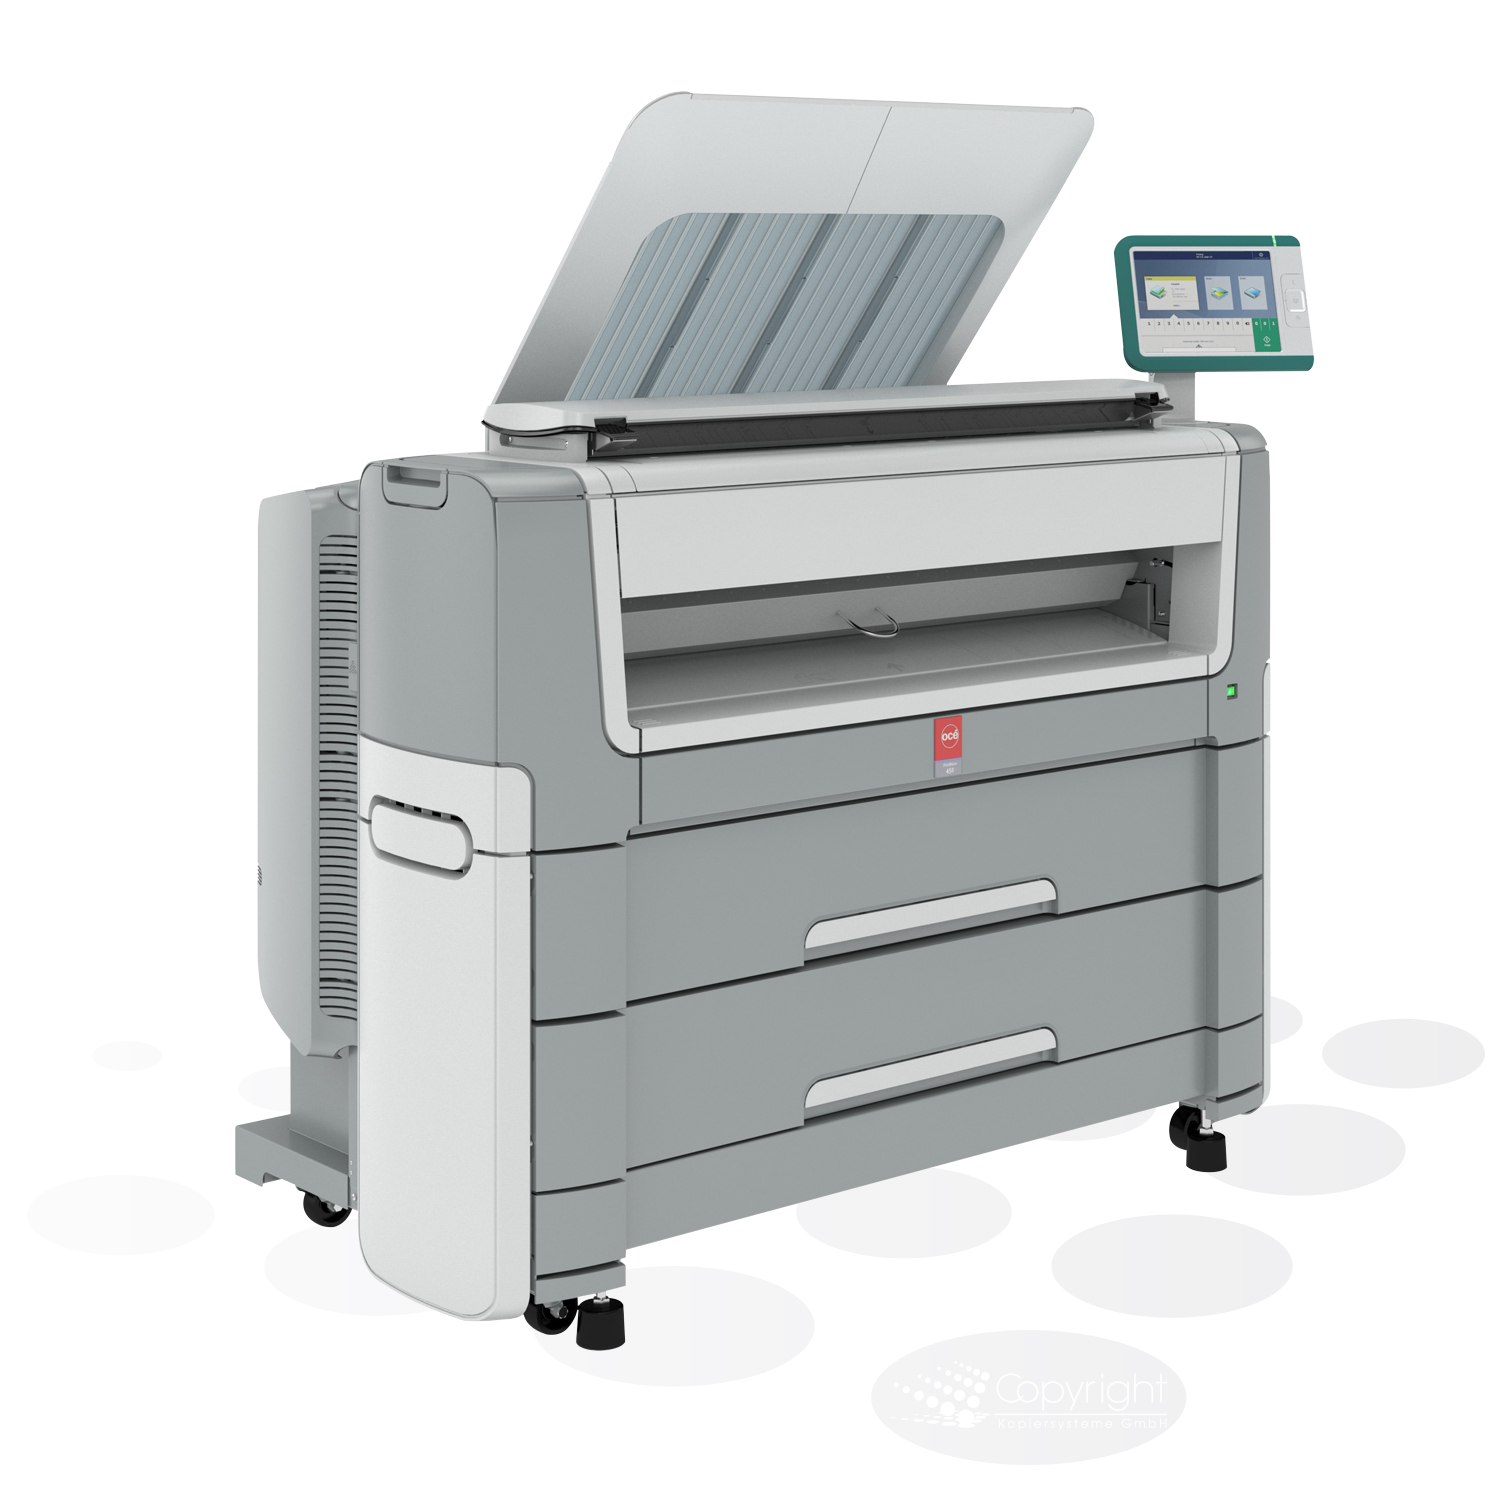 Plotwave 450 MFP 2